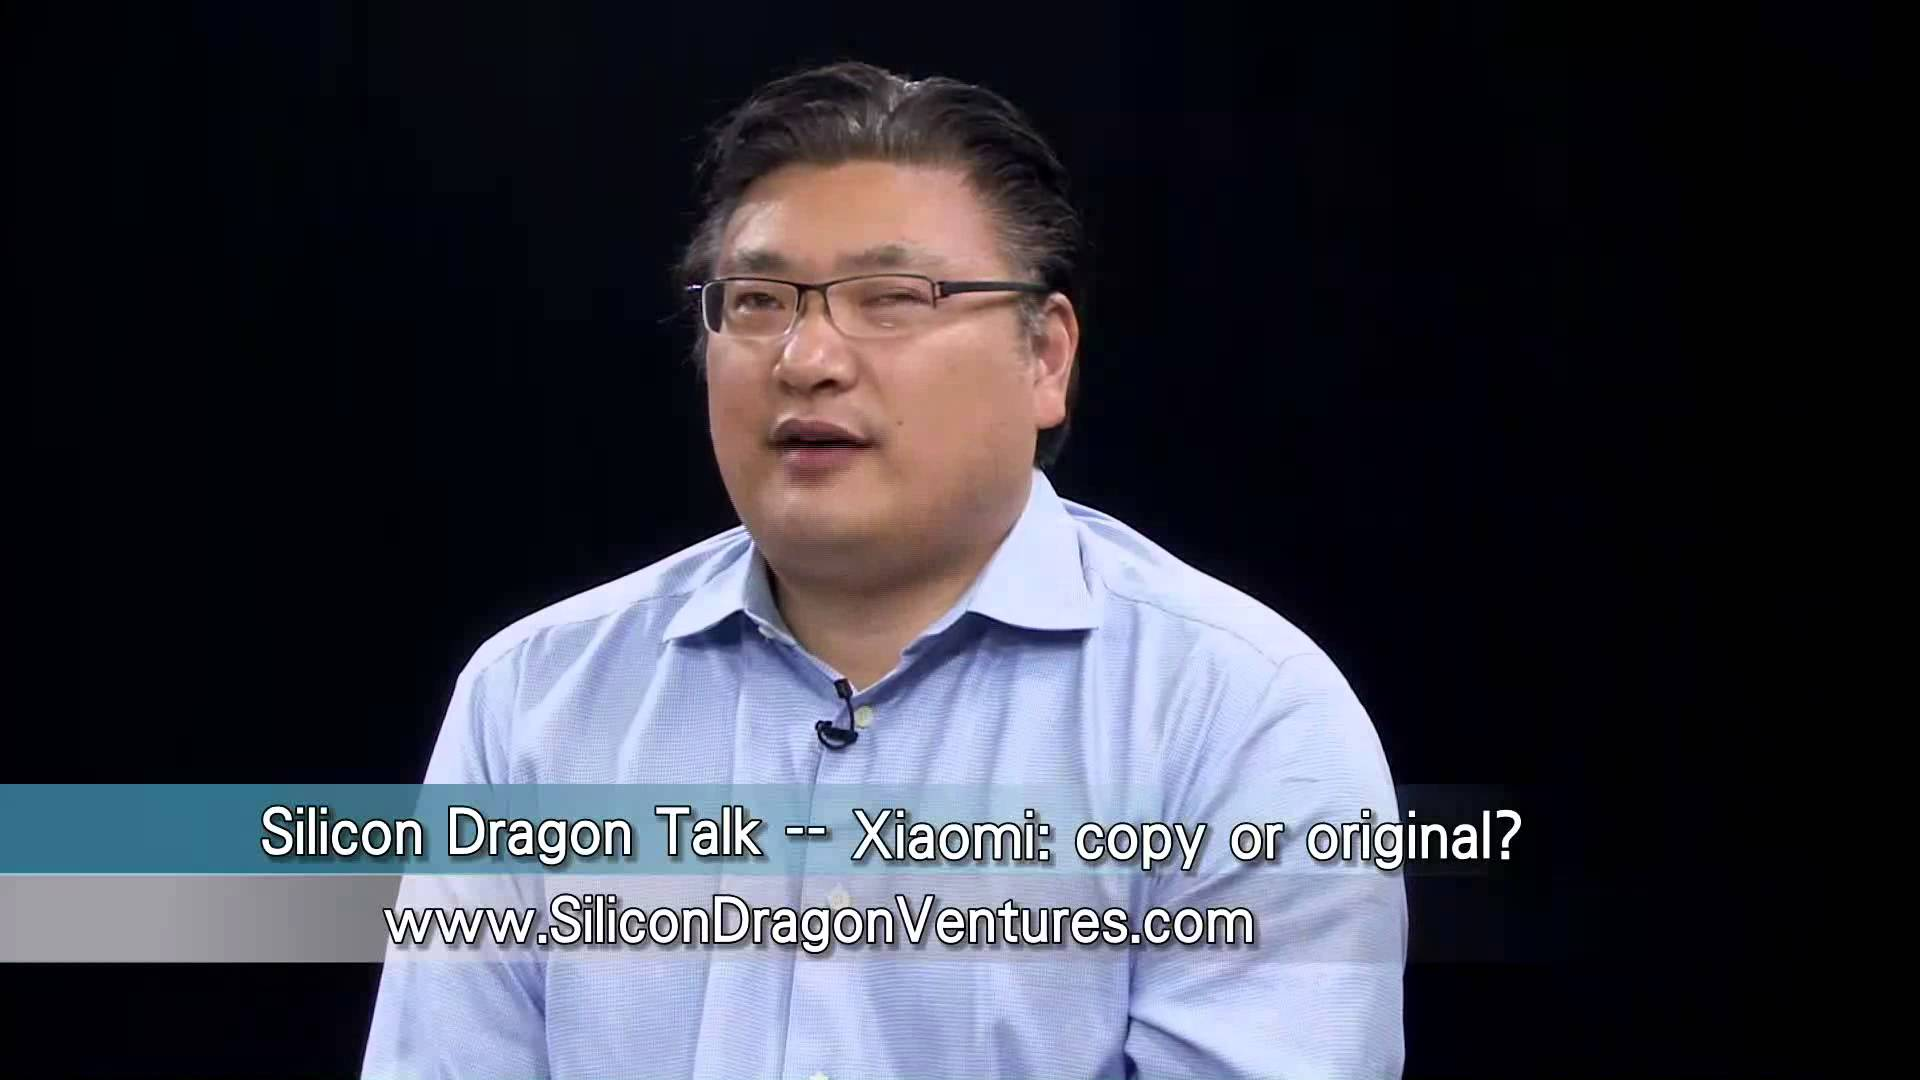 Silicon Dragon Talk: Xiaomi – Copy Of iPhone Or Original?